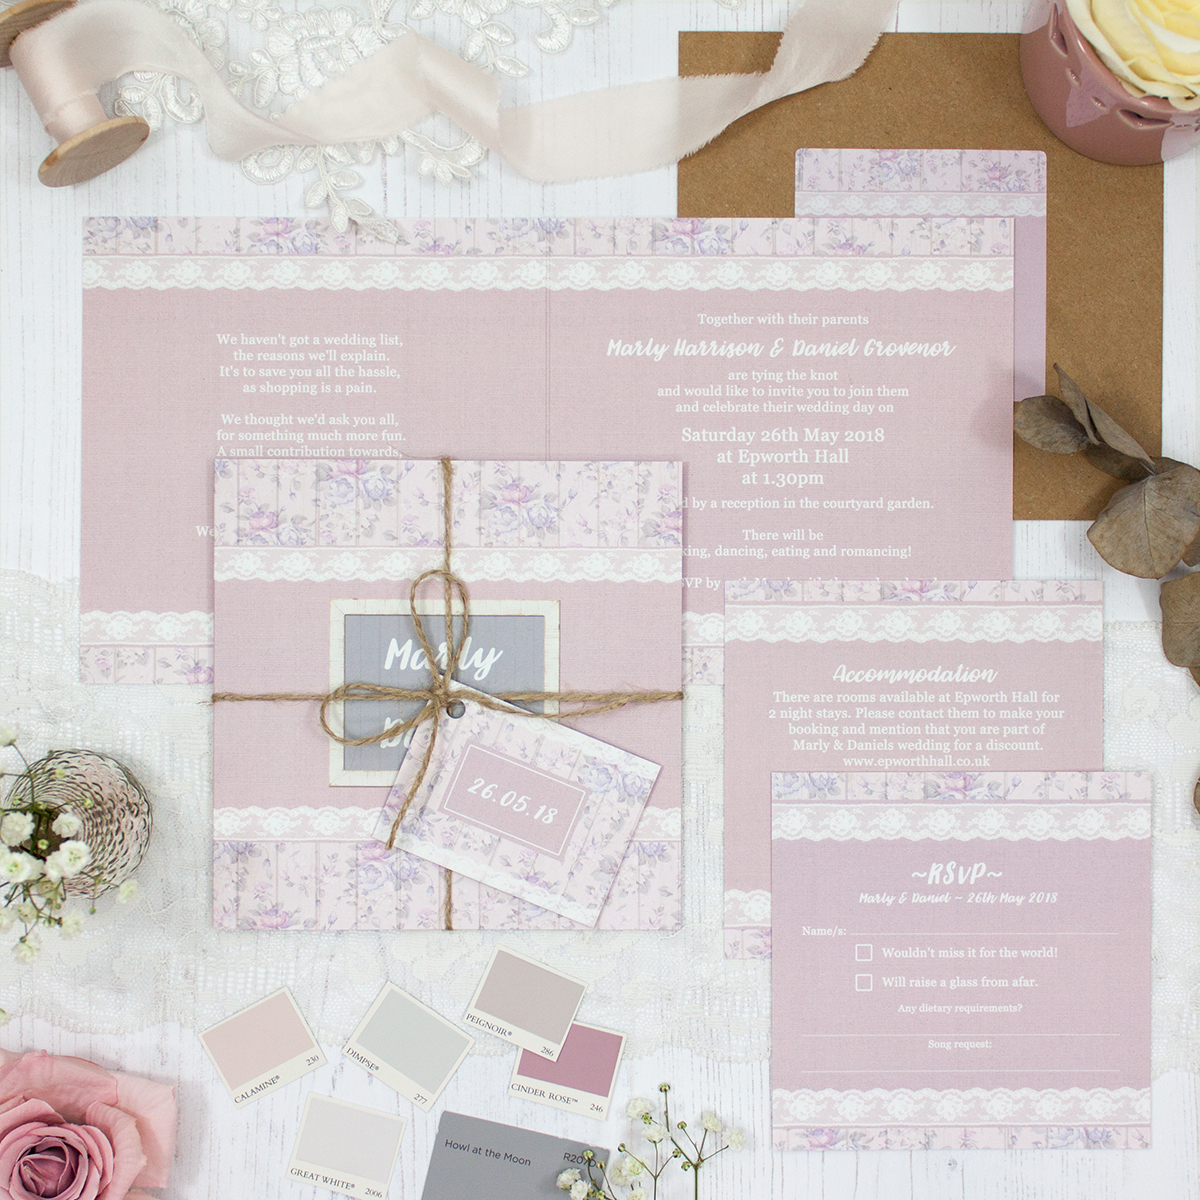 Dusky Dream Wedding showing invitation